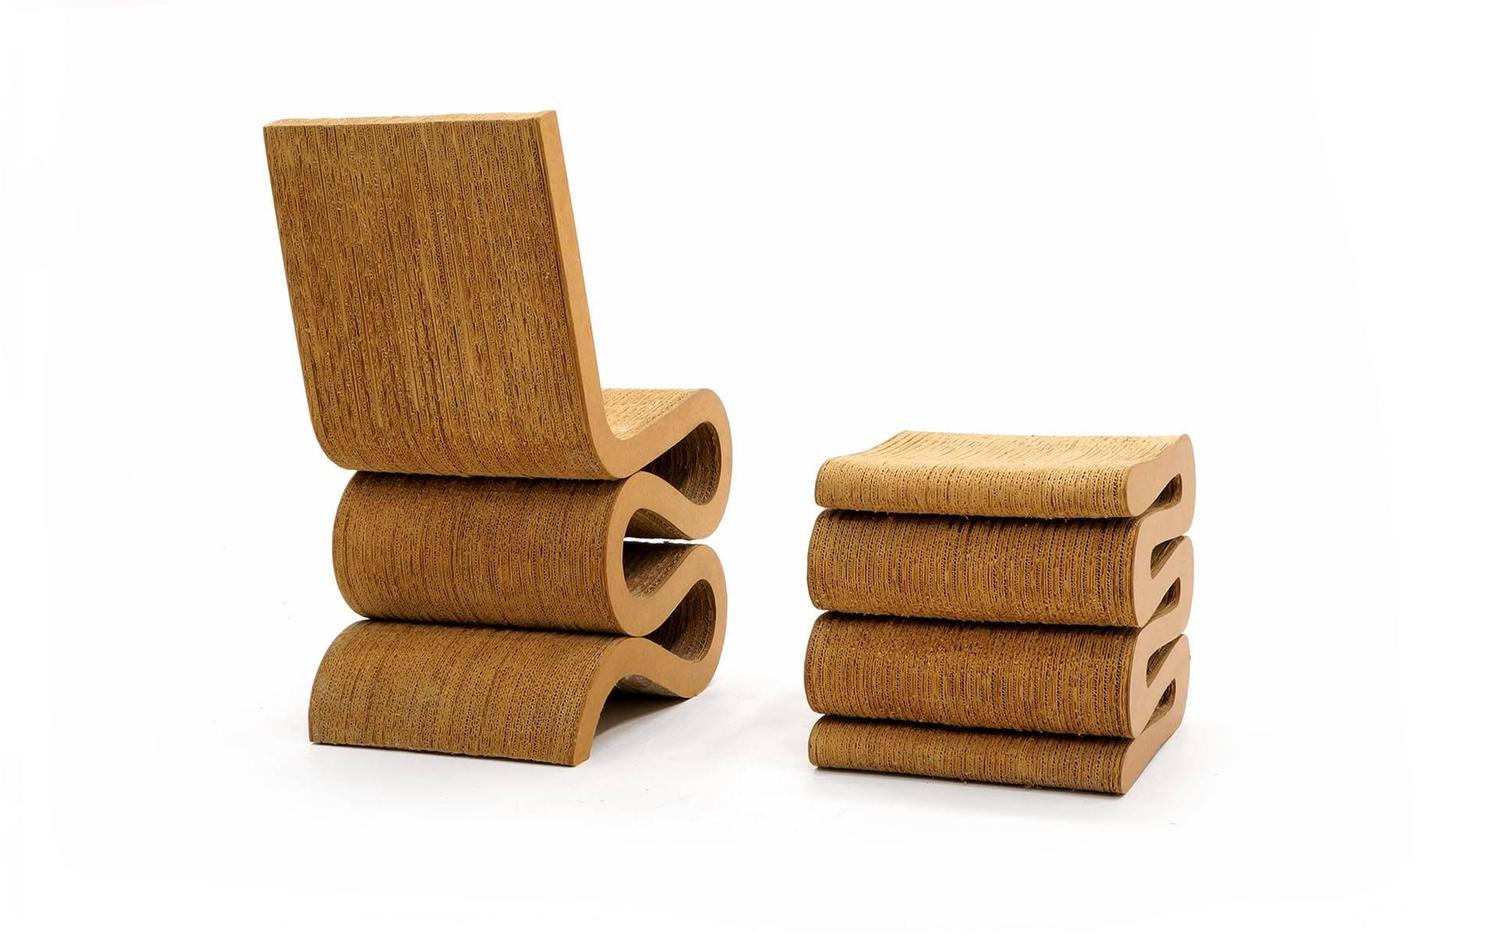 frank gehry cardboard chair padded shower with armrests original 1972 wiggle and